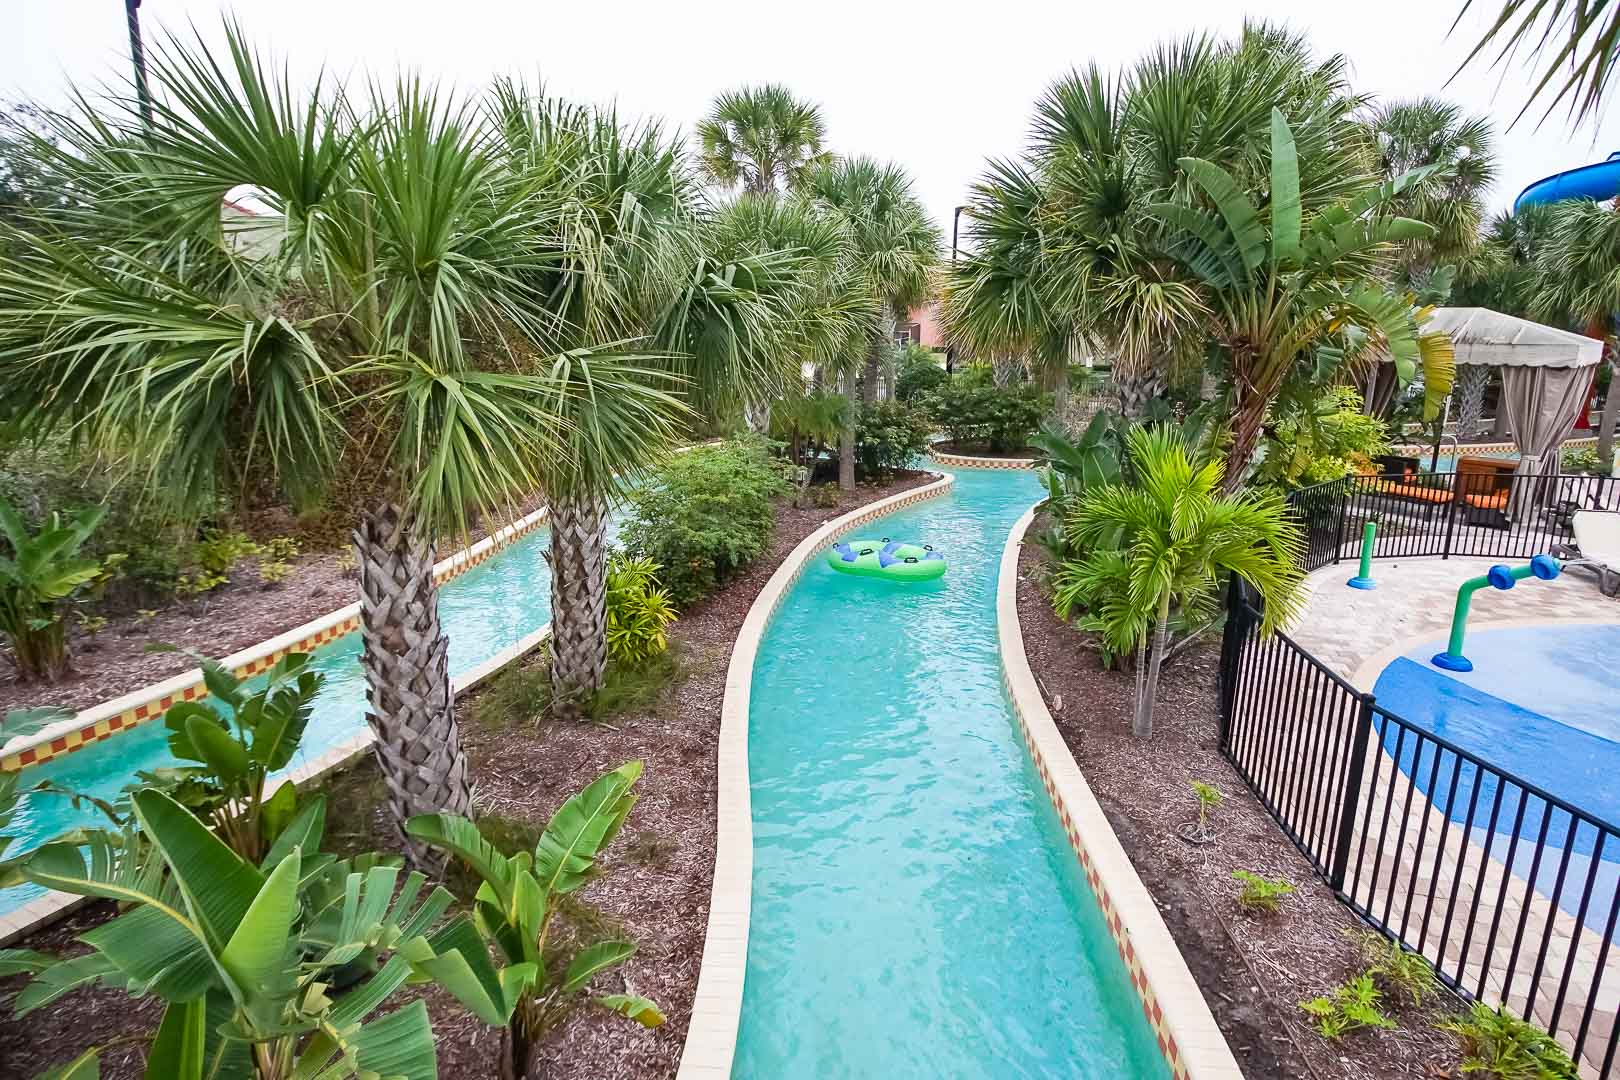 A relaxing view of the outdoor lazy river pool at VRI's Fantasy World Resort in Florida.